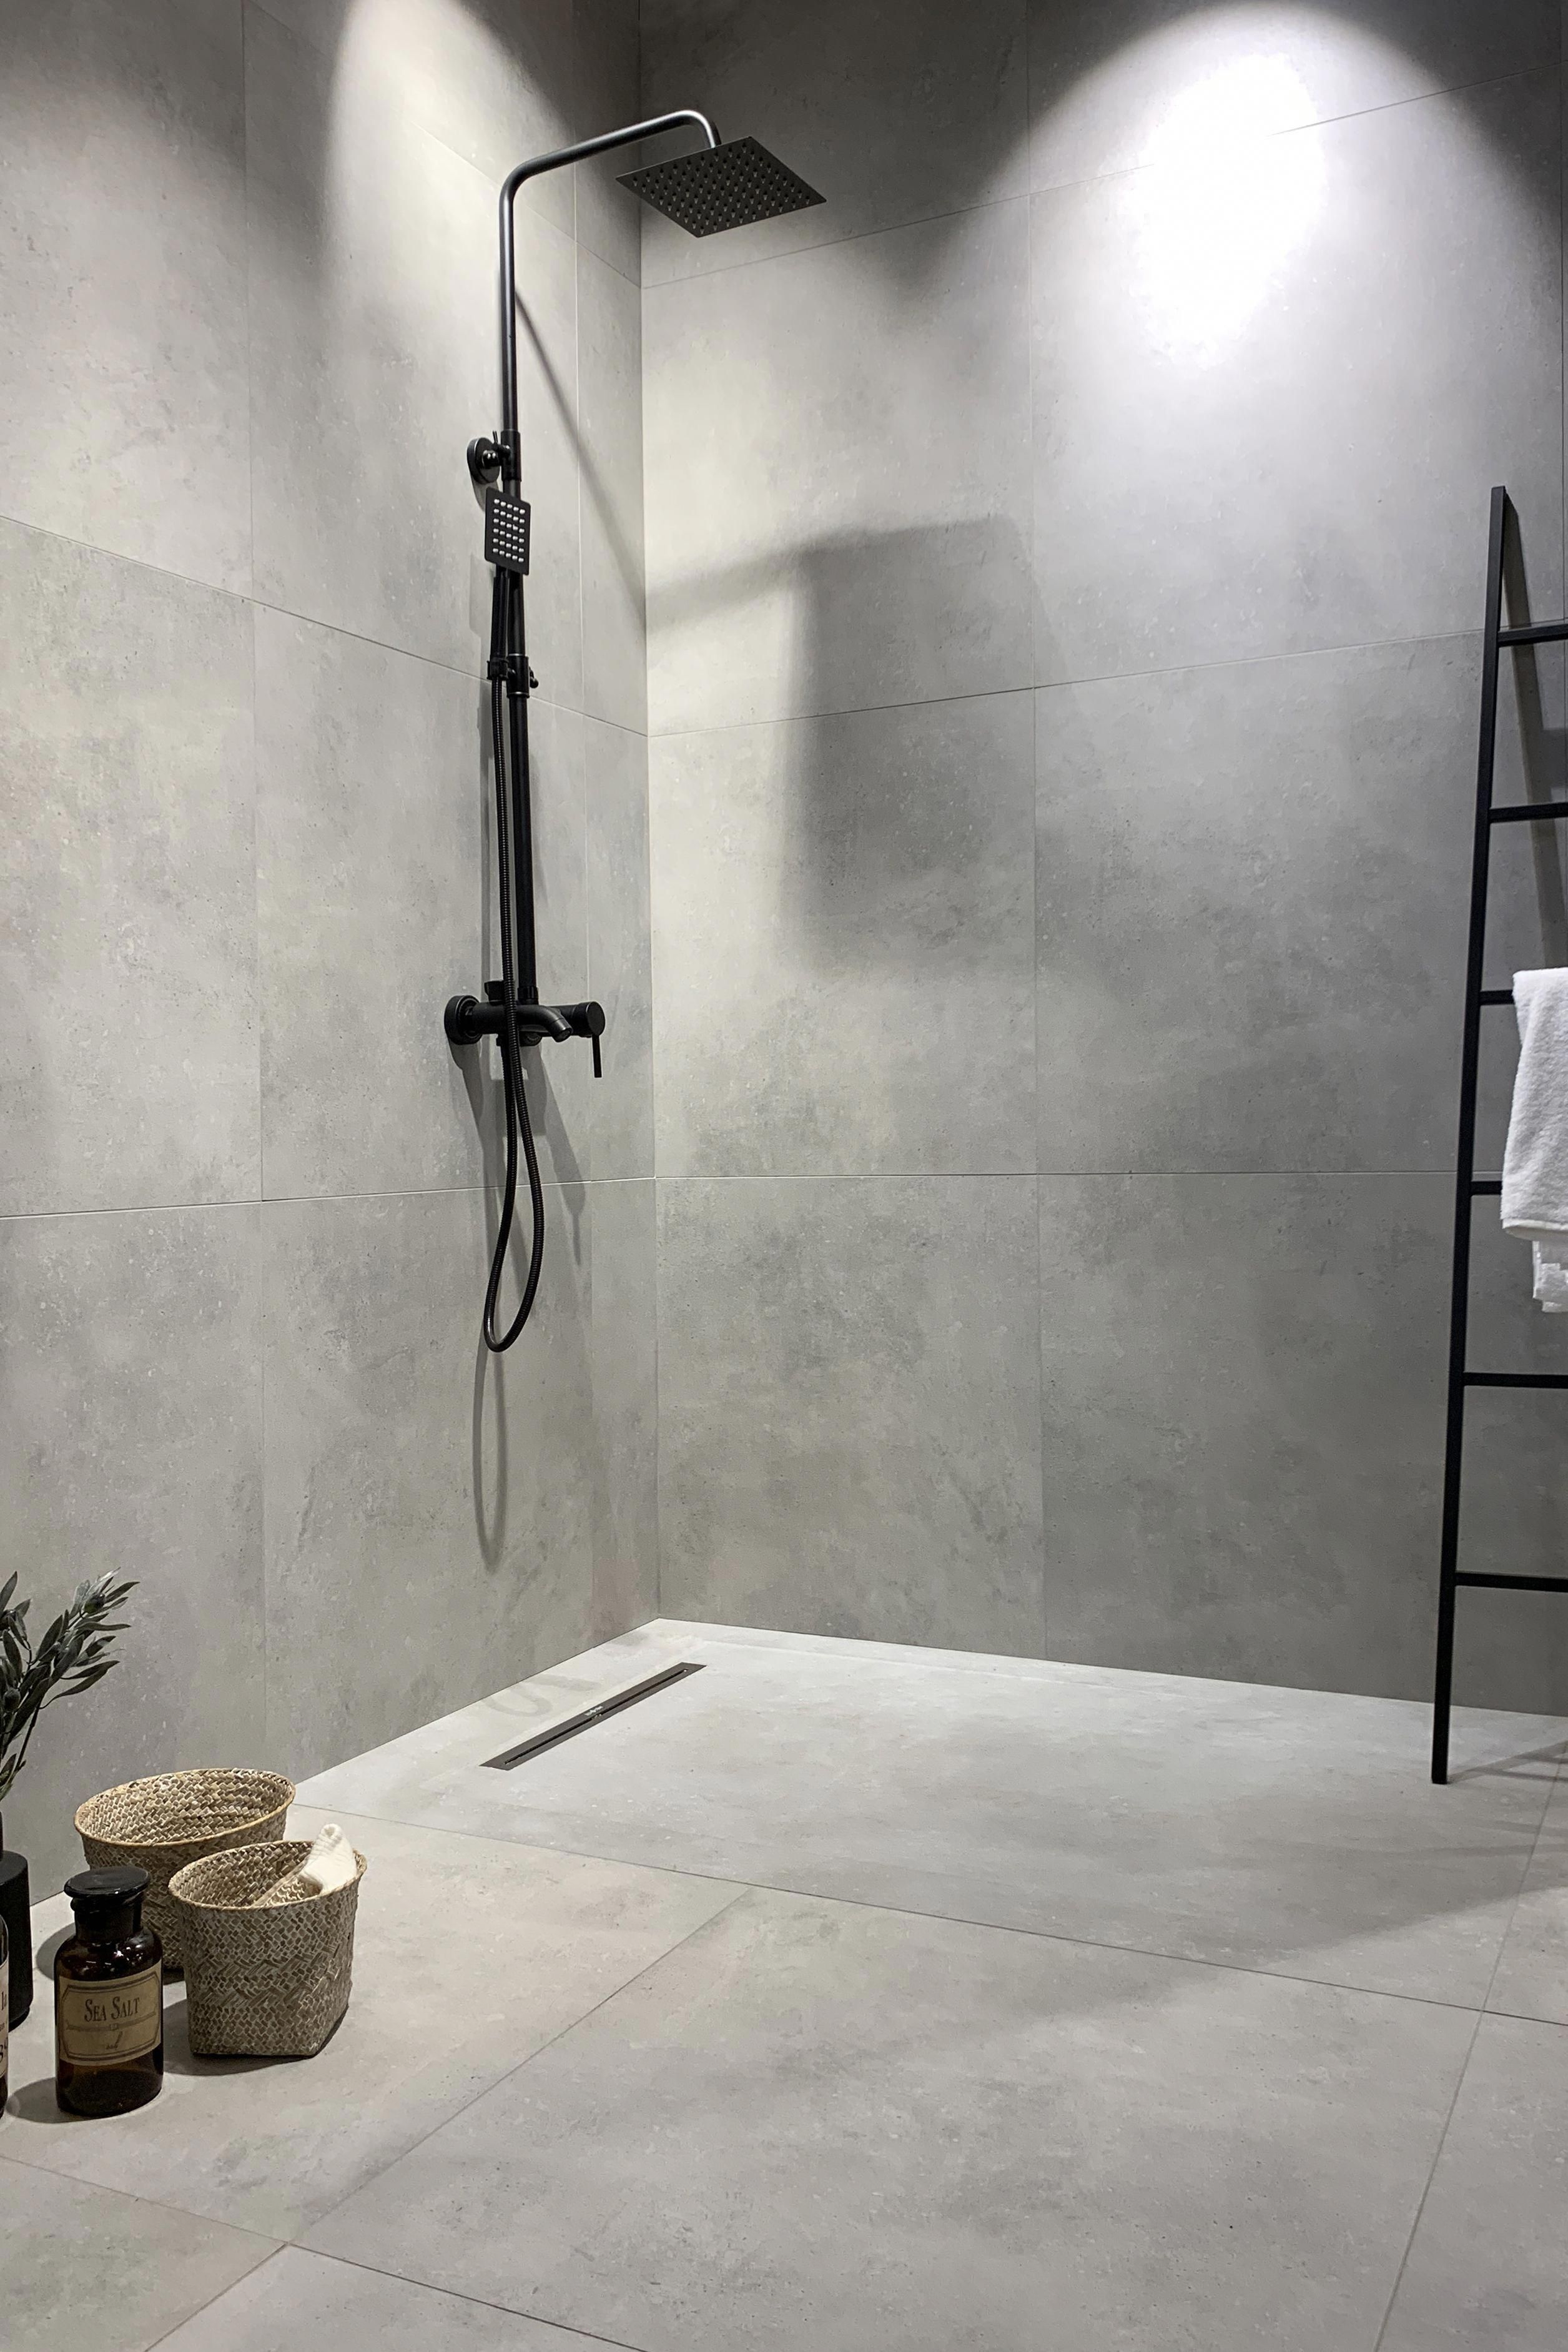 Spa Bathroom Discover Tips On How To Decorate And See 60 Ideas In 2020 Concrete Tiles Bathroom Shower Tile Bathroom Renovation Trends